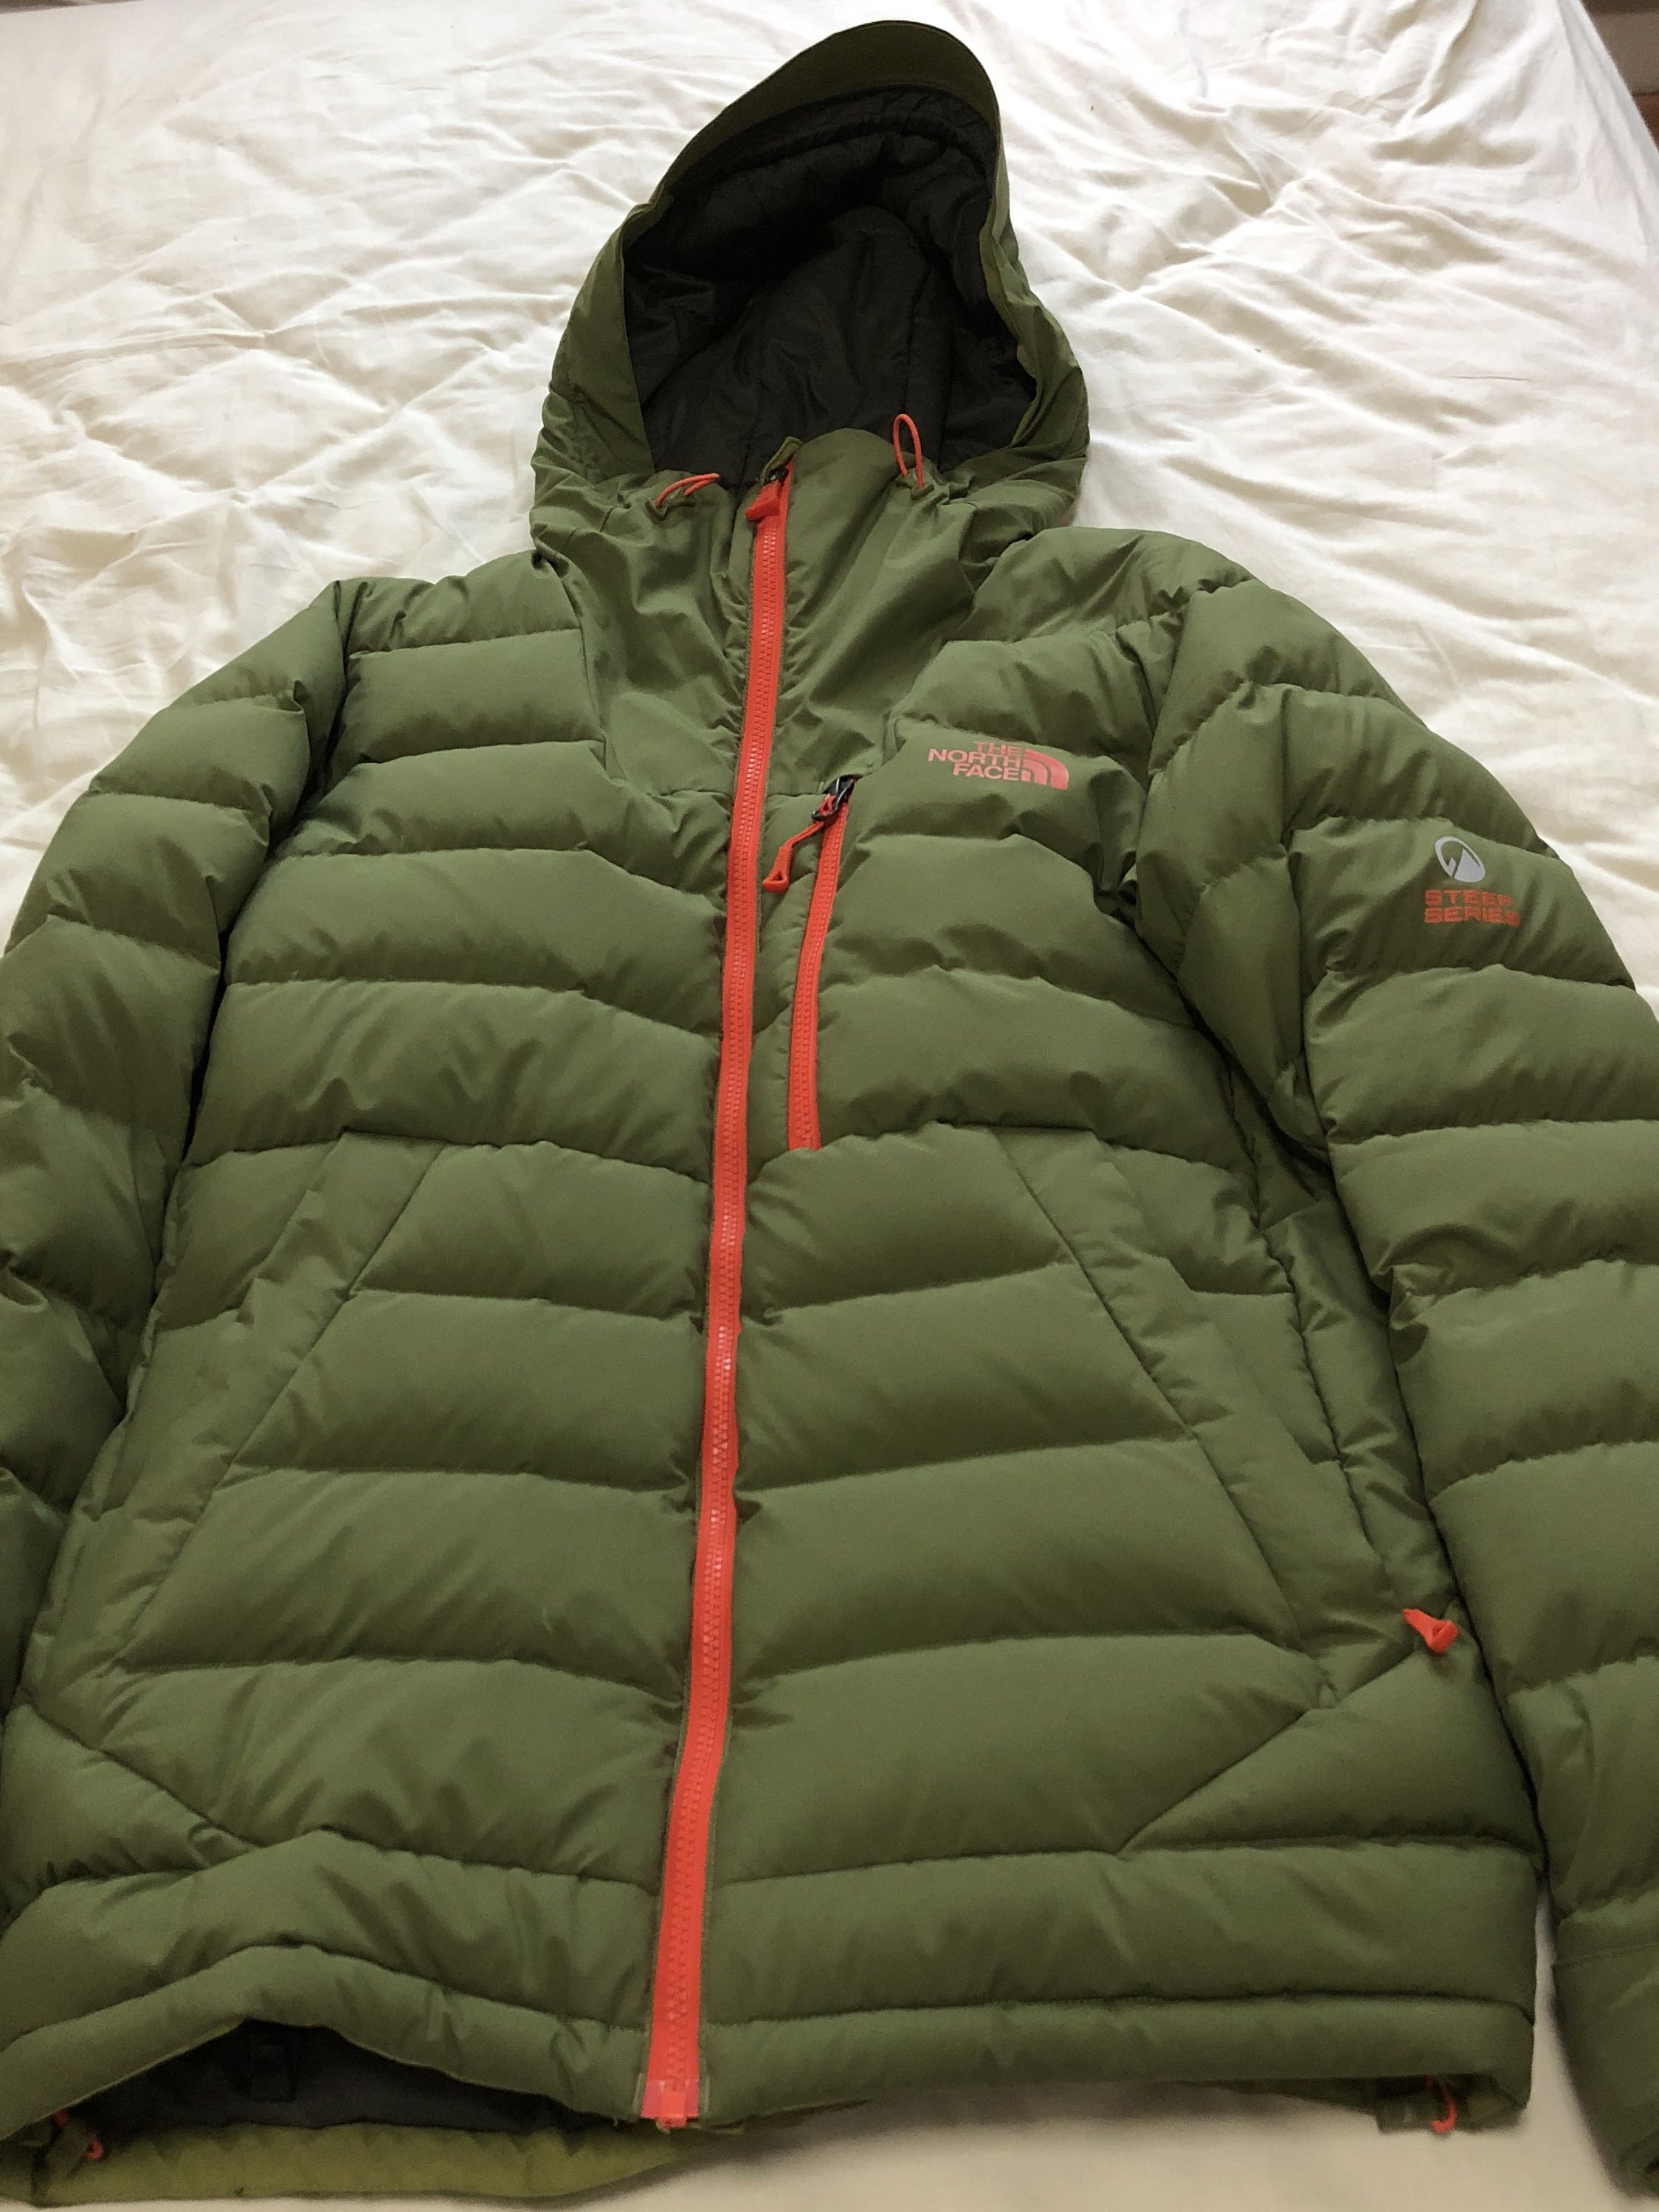 North face 700 pro down jacket - steep series de34a1649